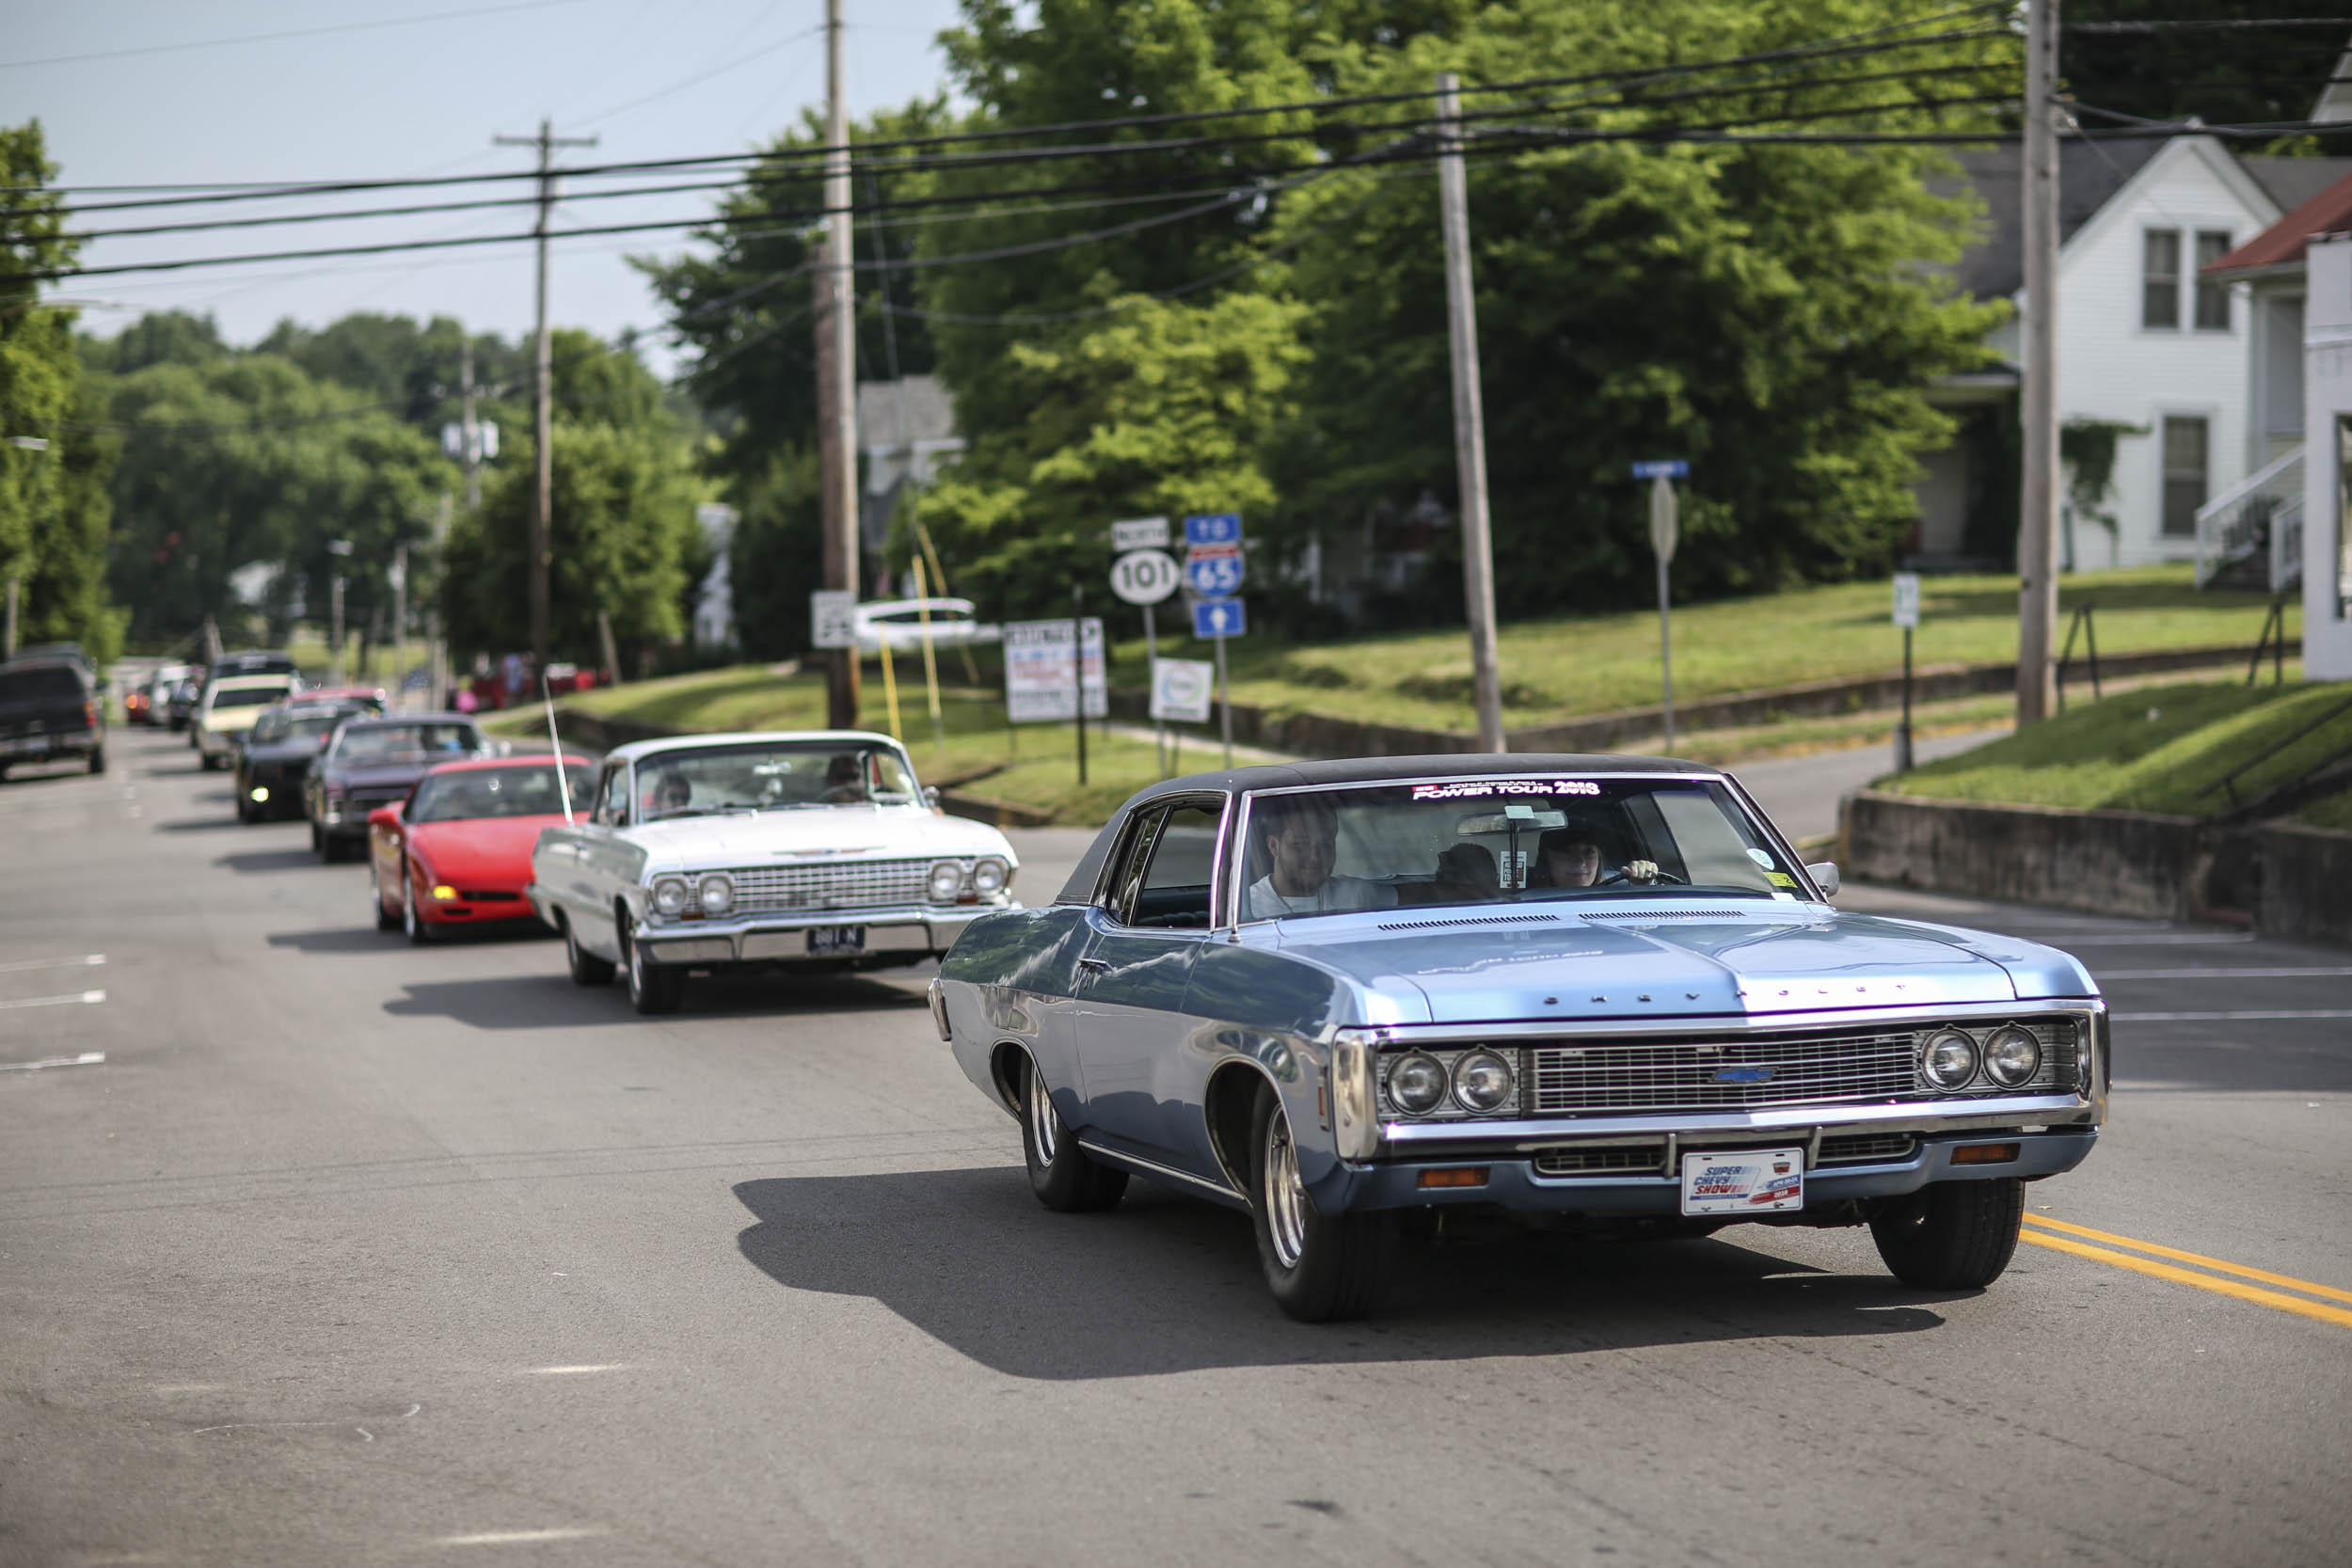 As the route winds through small towns, cars create a parade through main streets.